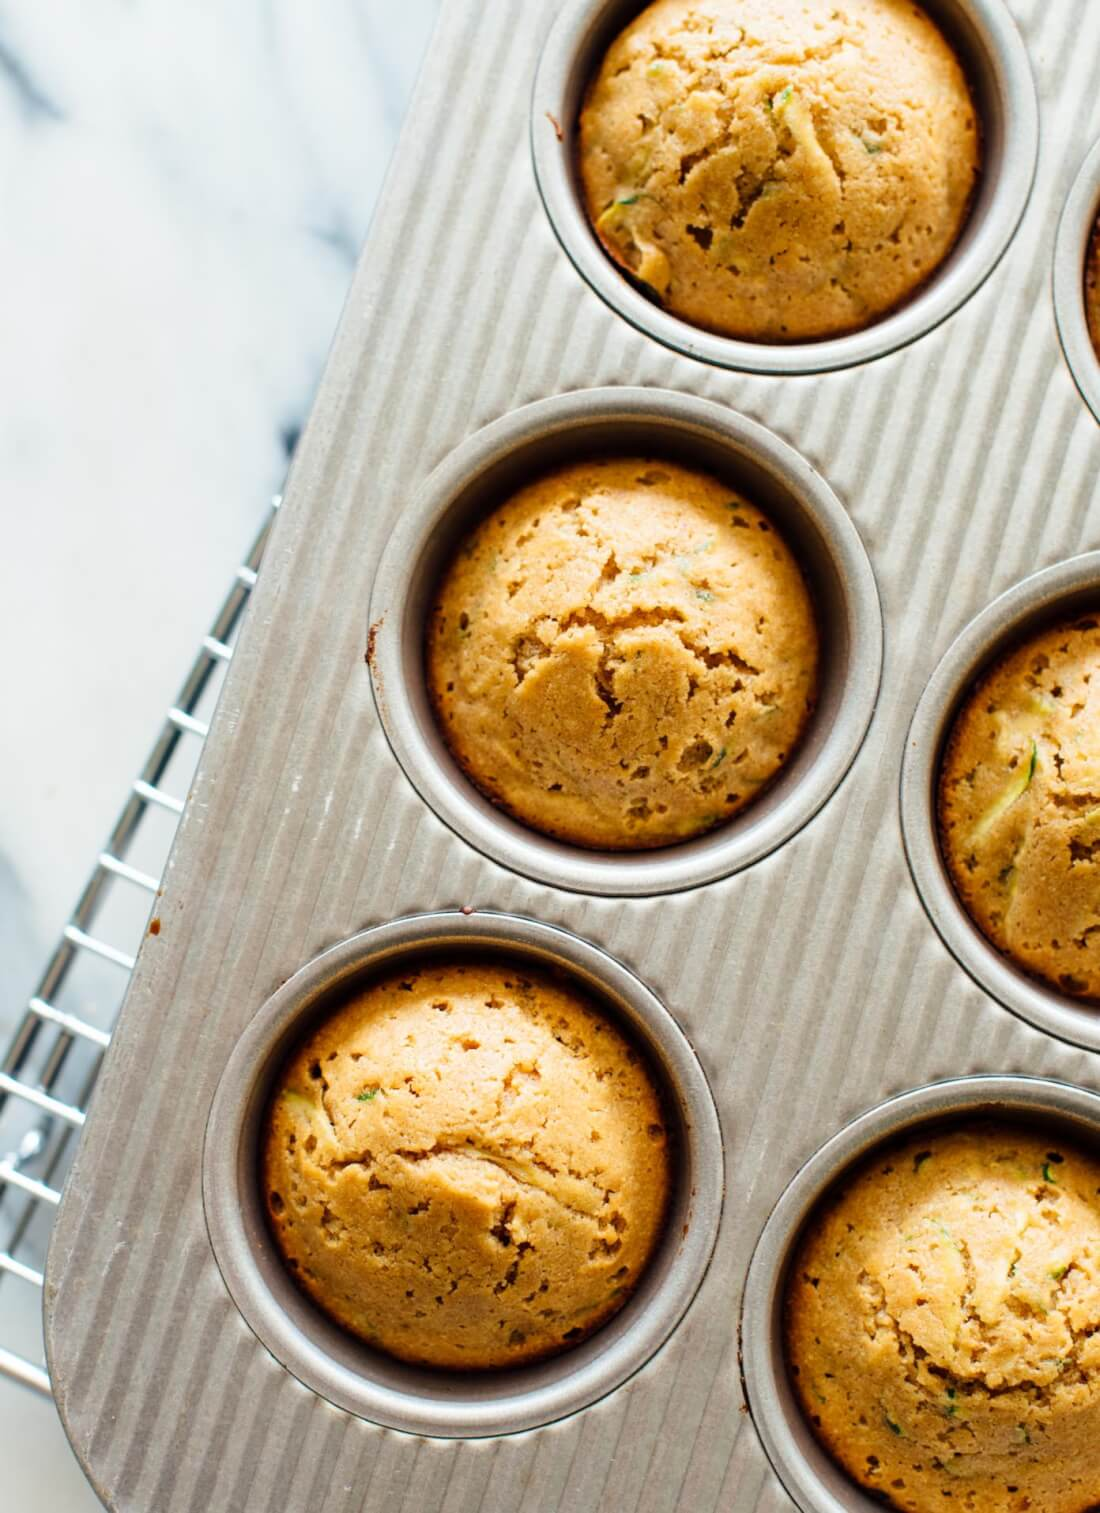 DELICIOUS whole-grain, naturally-sweetened zucchini muffins - cookieandkate.com